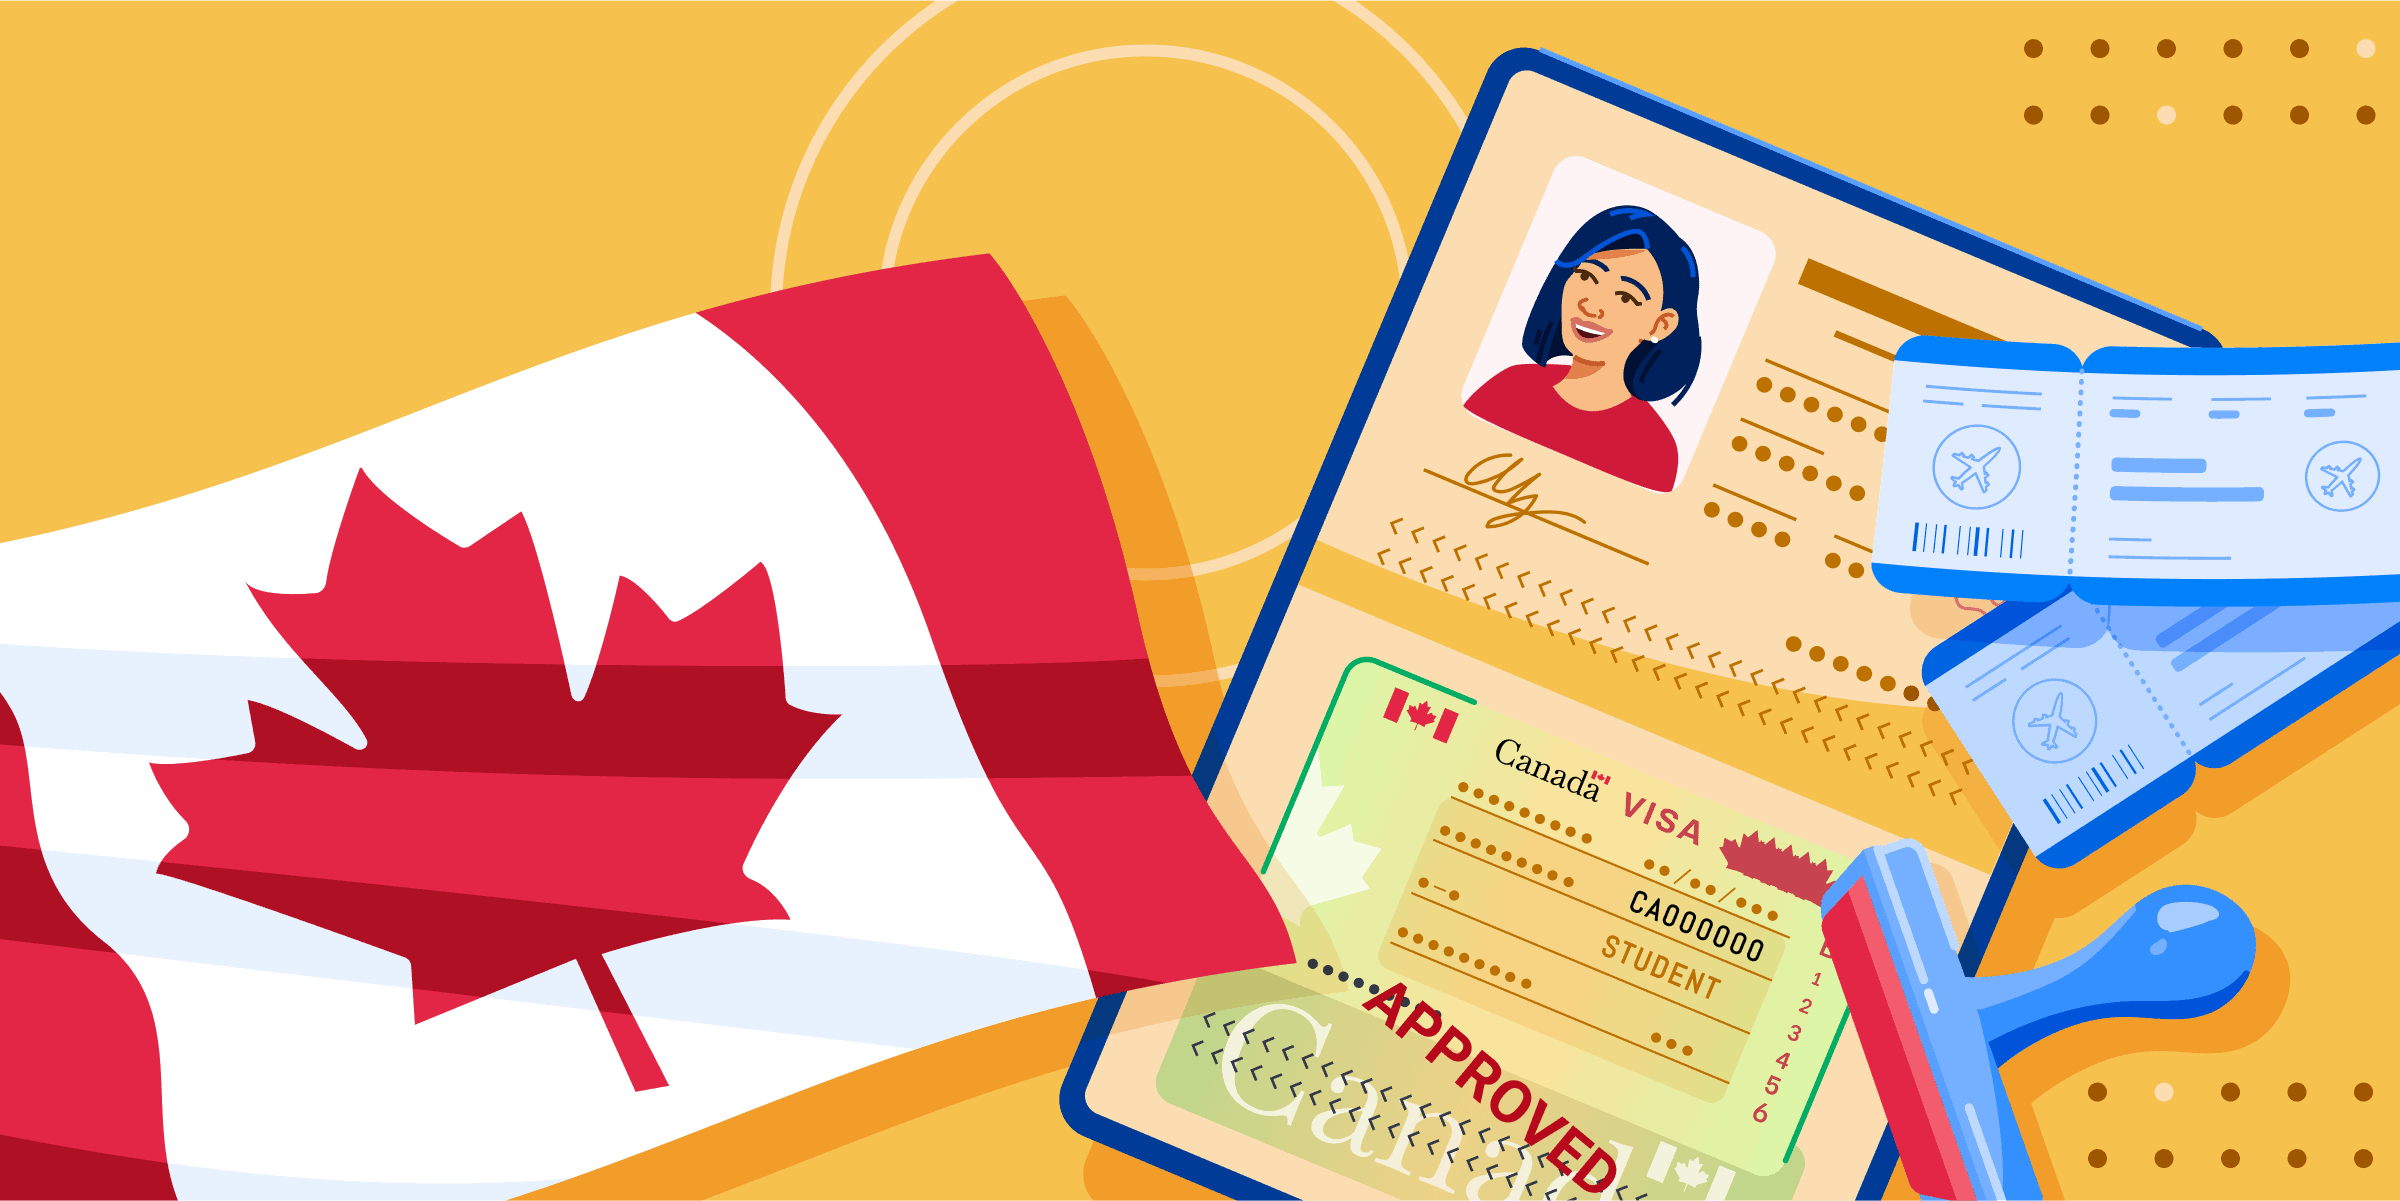 ApplyInsights: Applicant Age a Major Factor in Canadian Student Visa Approval banner featuring Canadian flag, visa, stamp, and plane tickets